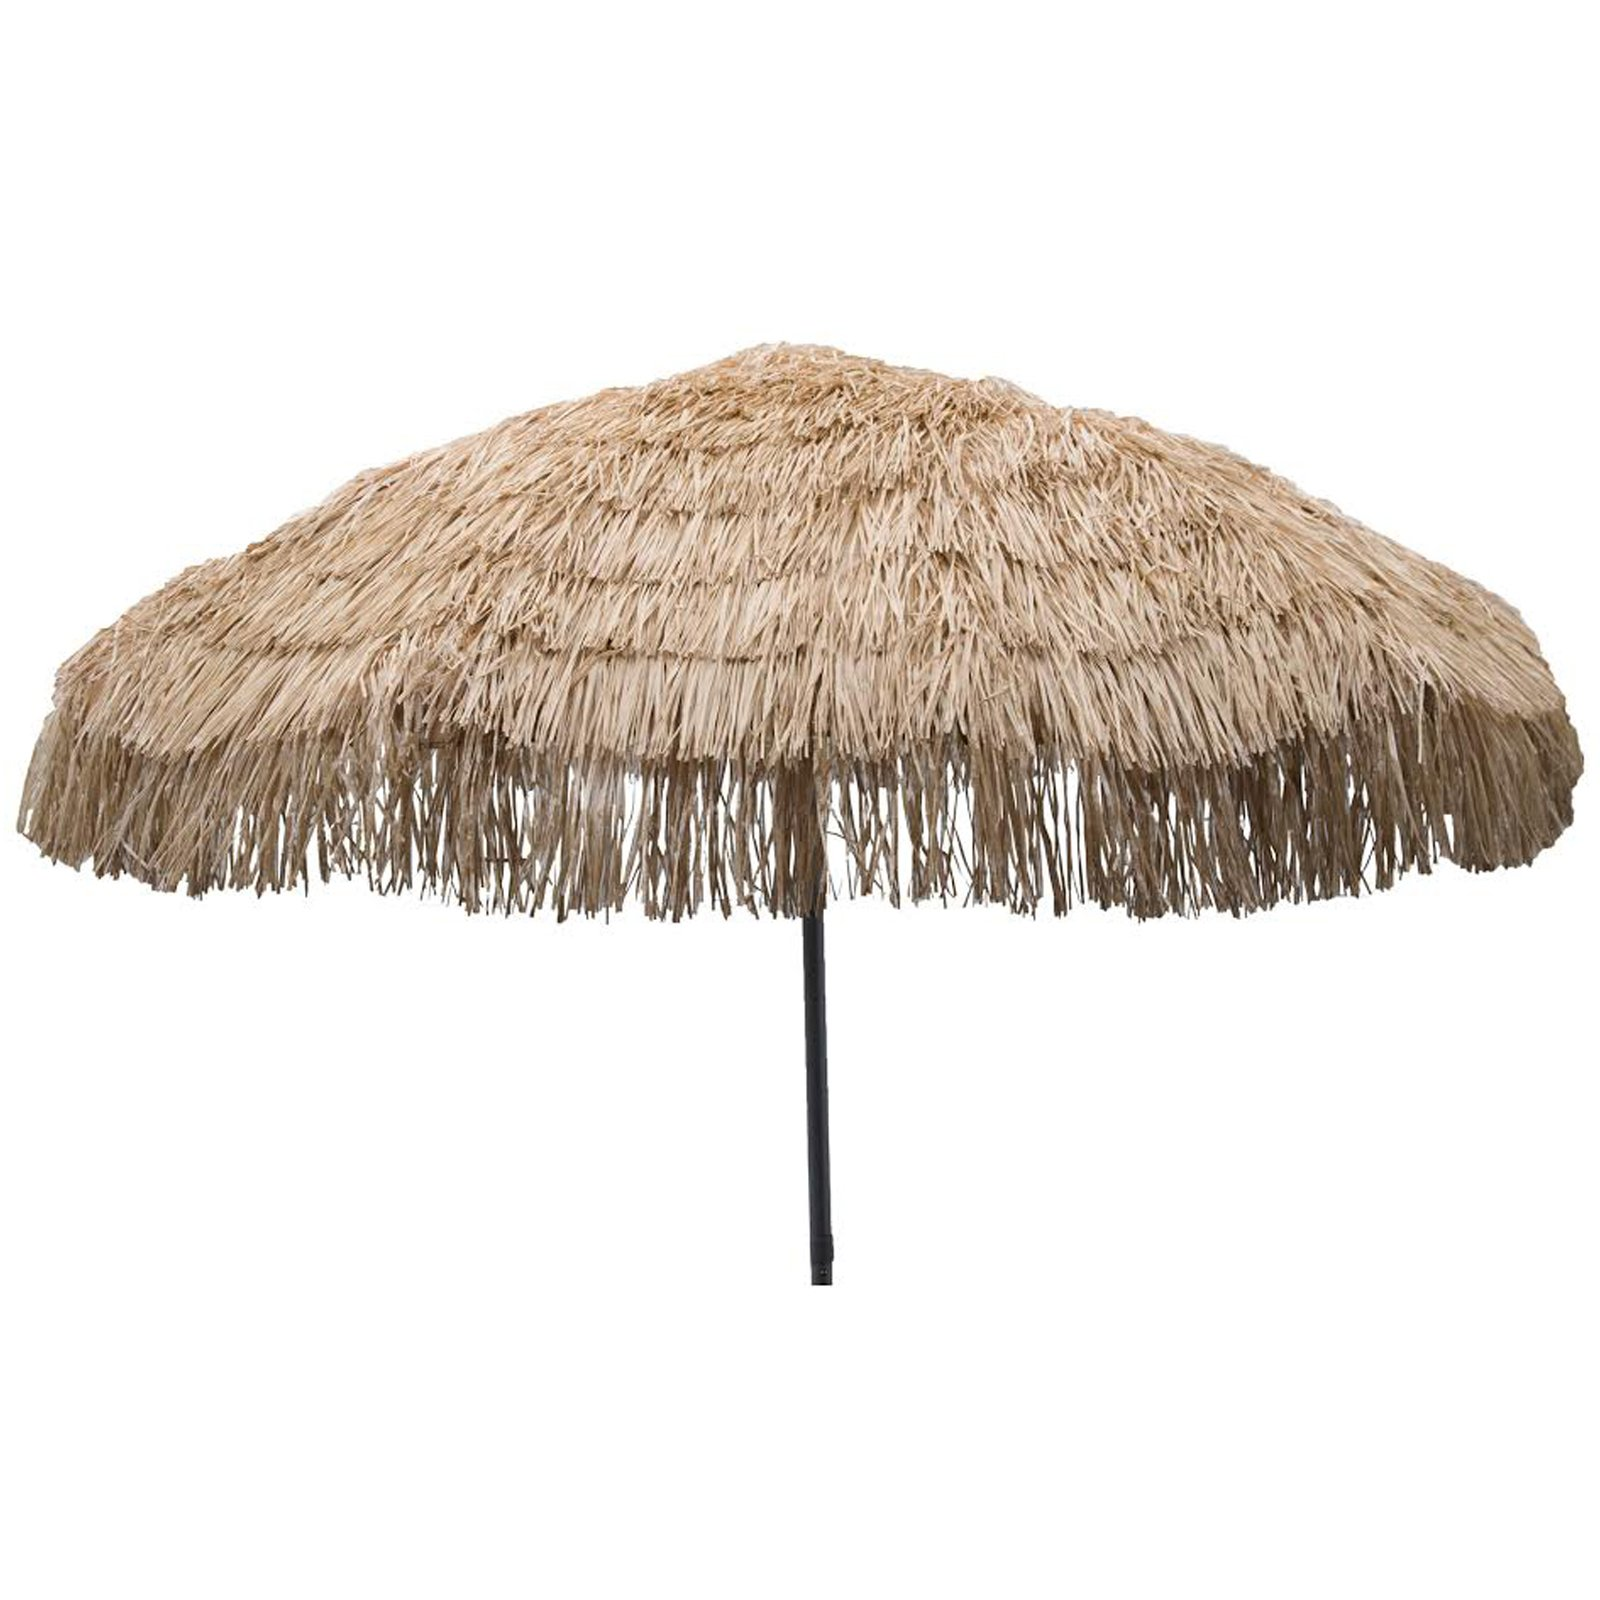 Palapa Tiki Push/Tilt Whiskey Umbrella 7.5 foot - Patio Pole